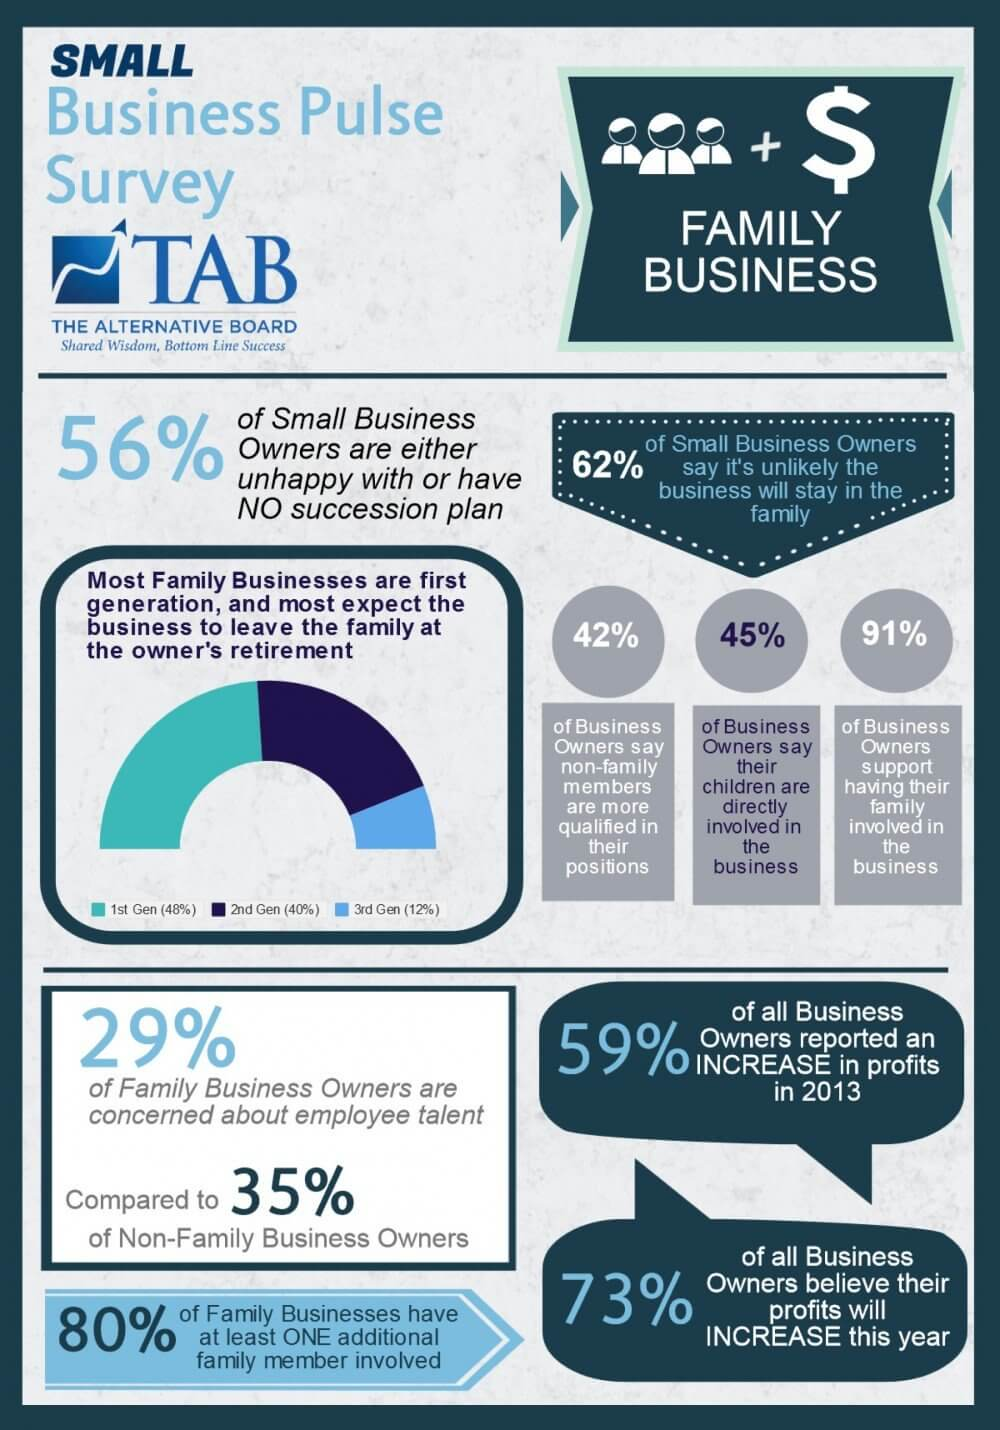 Business-Pulse-Survey-Family-Business